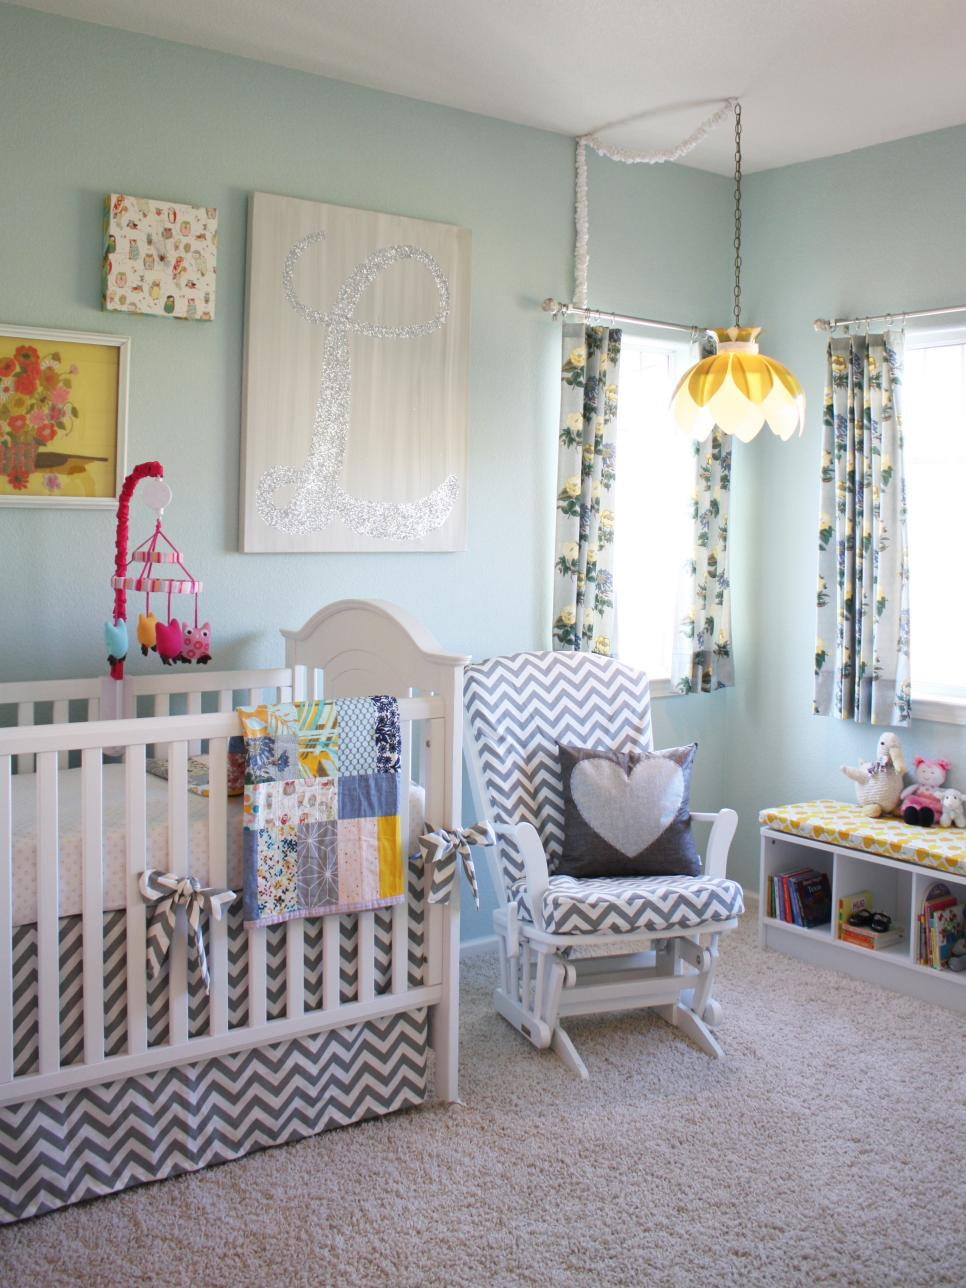 Lighting ideas for your kids 39 room hgtv for Girl nursery lighting